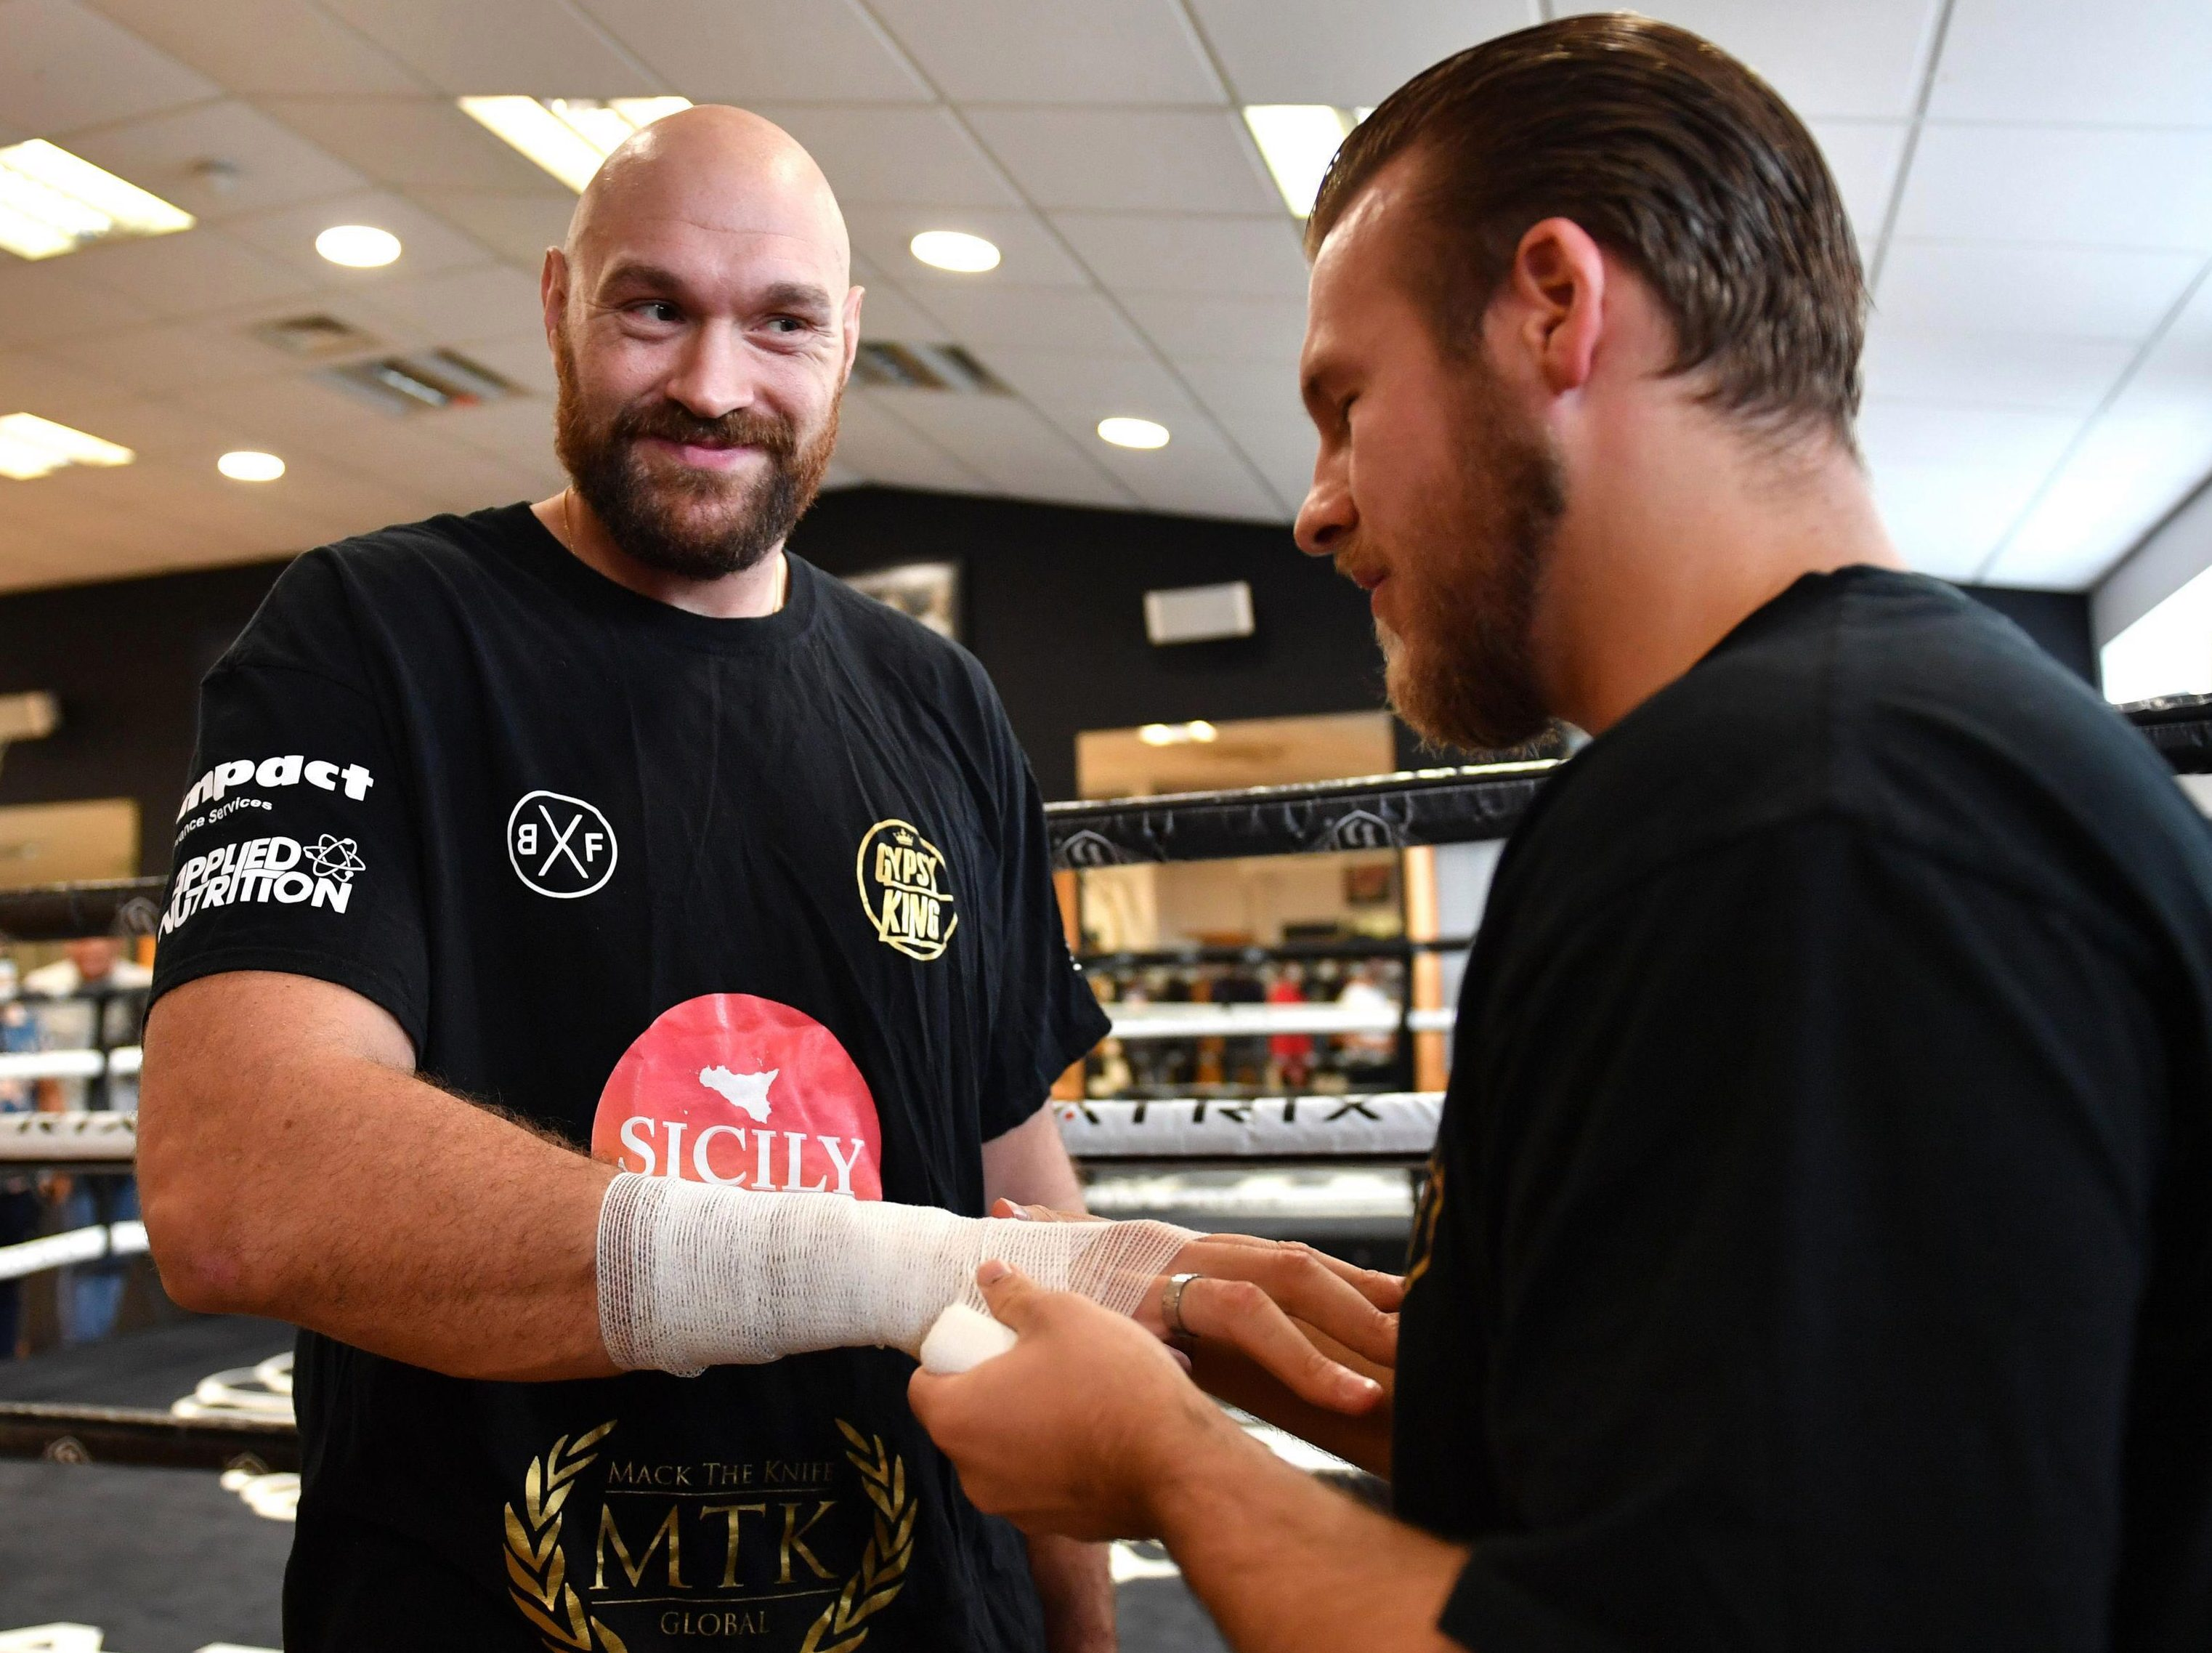 Tyson Fury says he is the best heavyweight in history and could beat unbeaten rivals Deontay Wilder and Anthony Joshua on the same bill